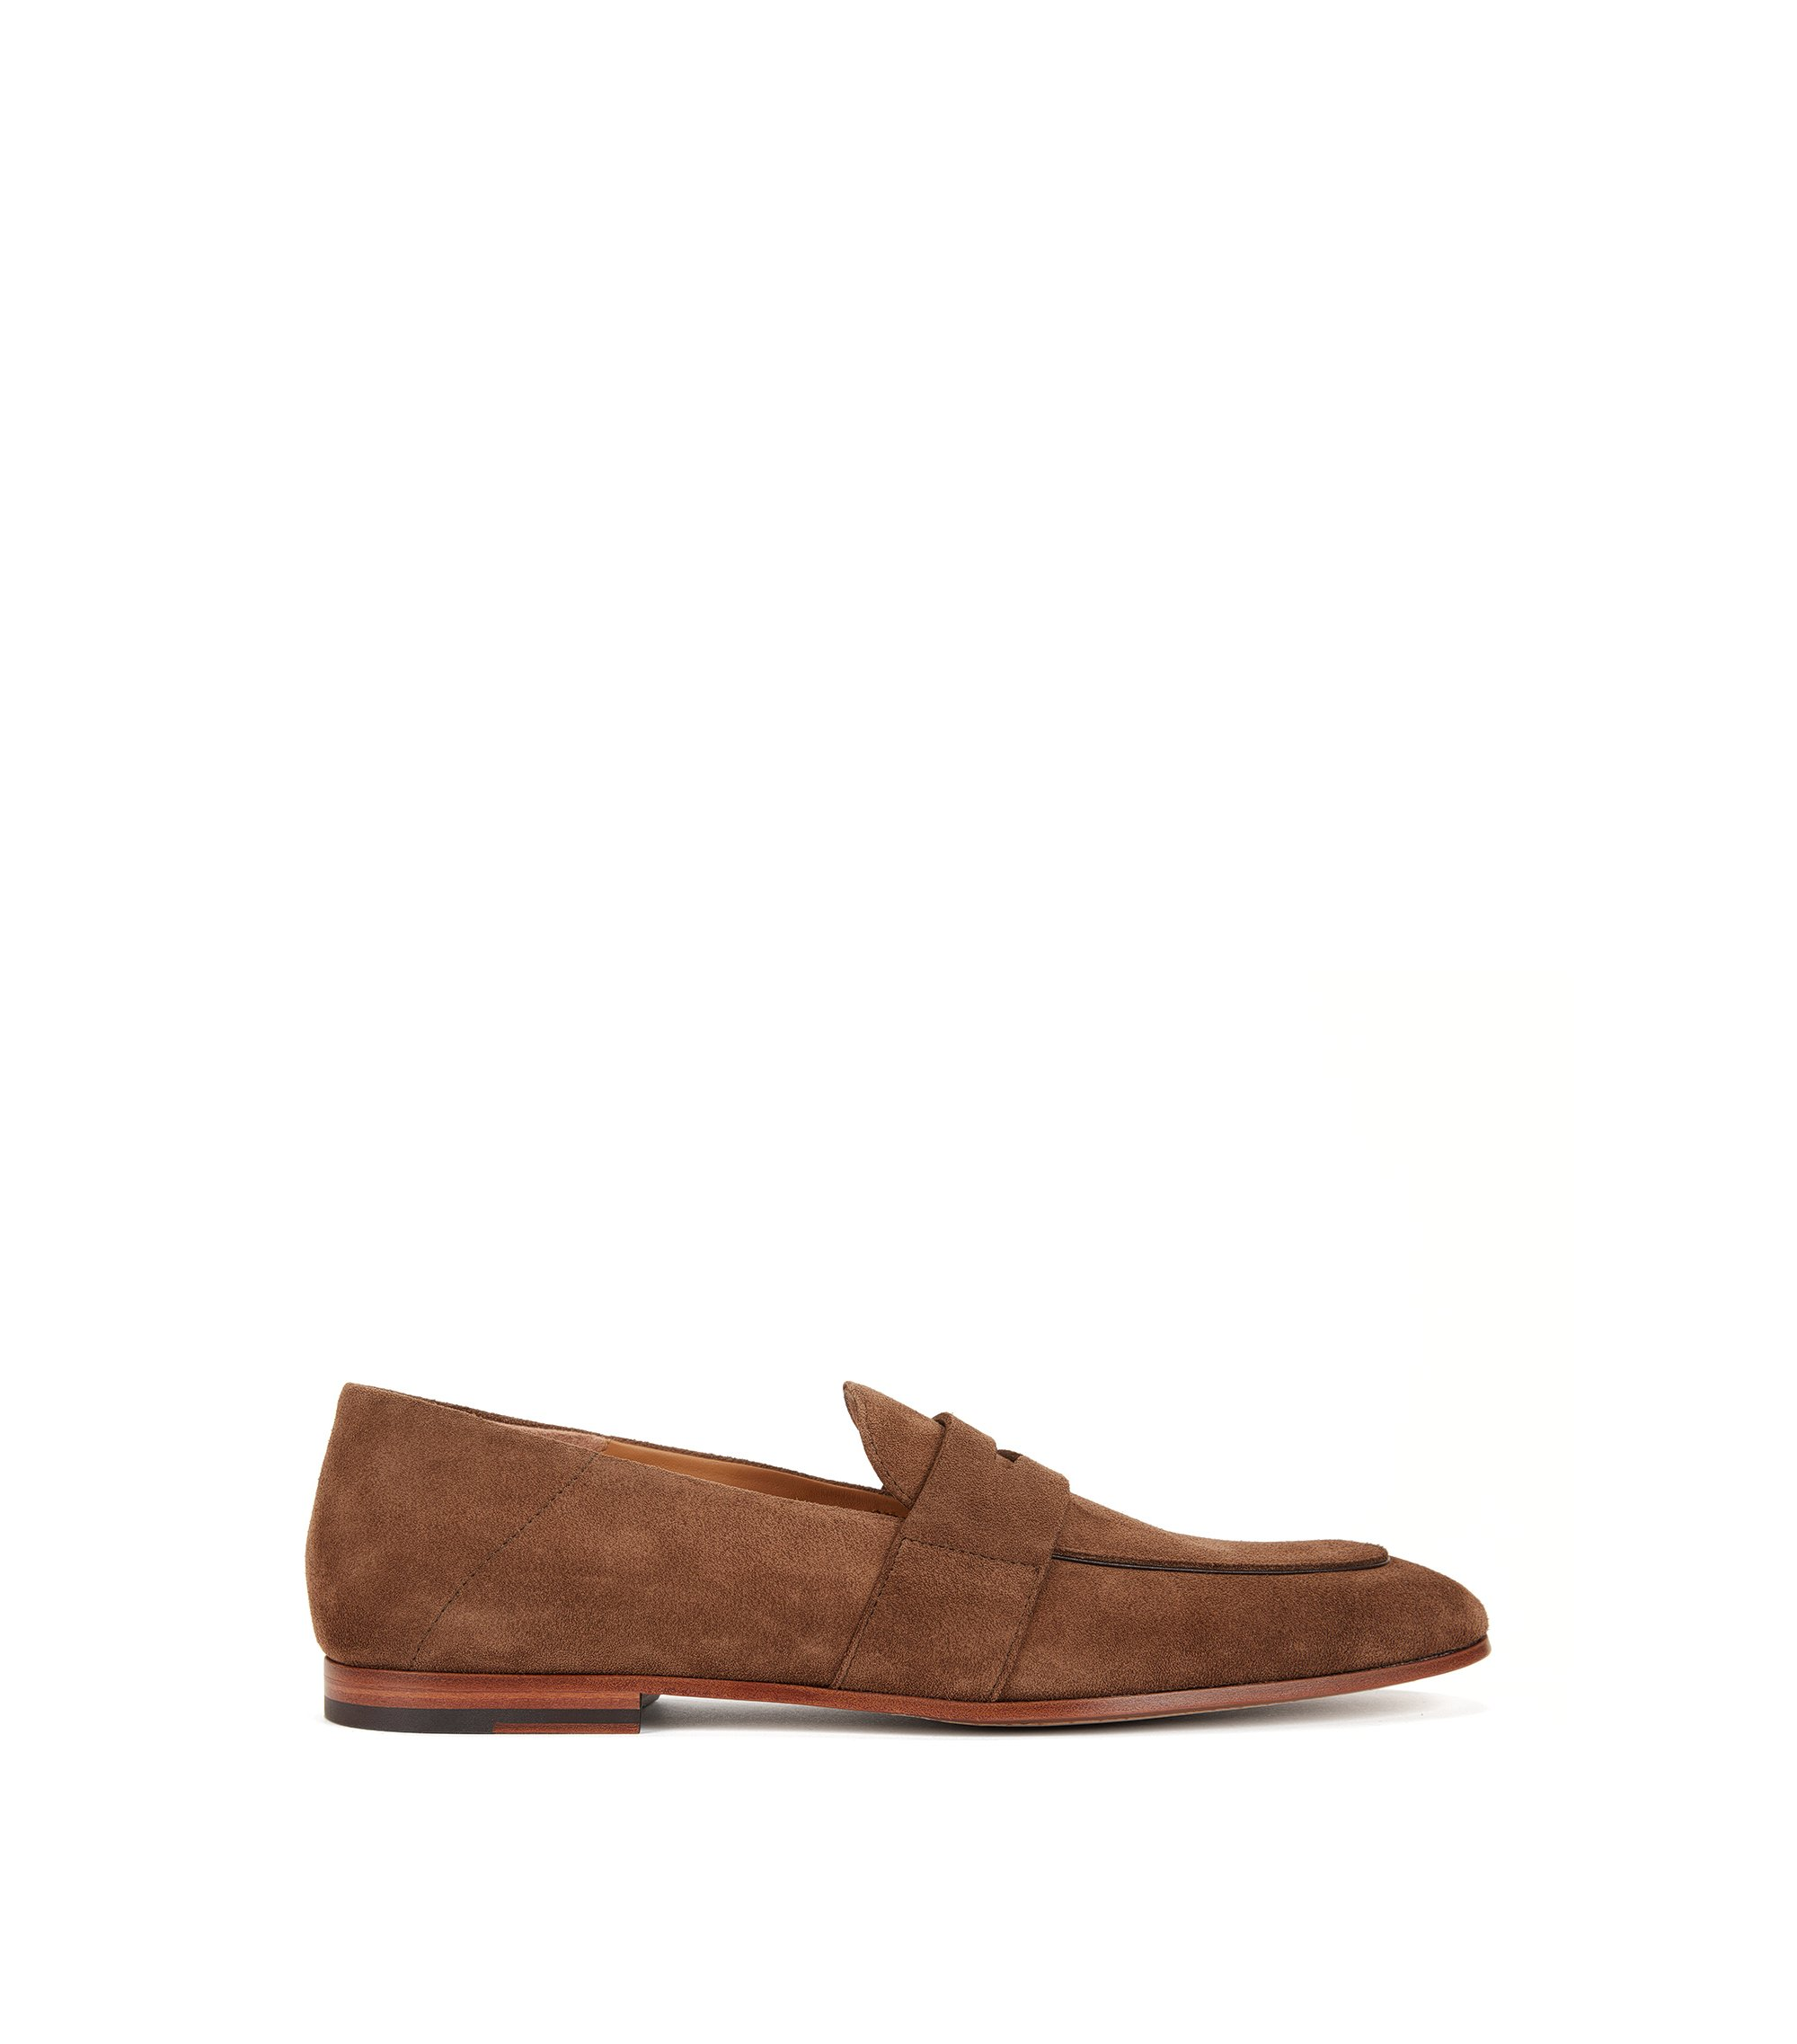 Suede penny loafers with leather soles, Khaki